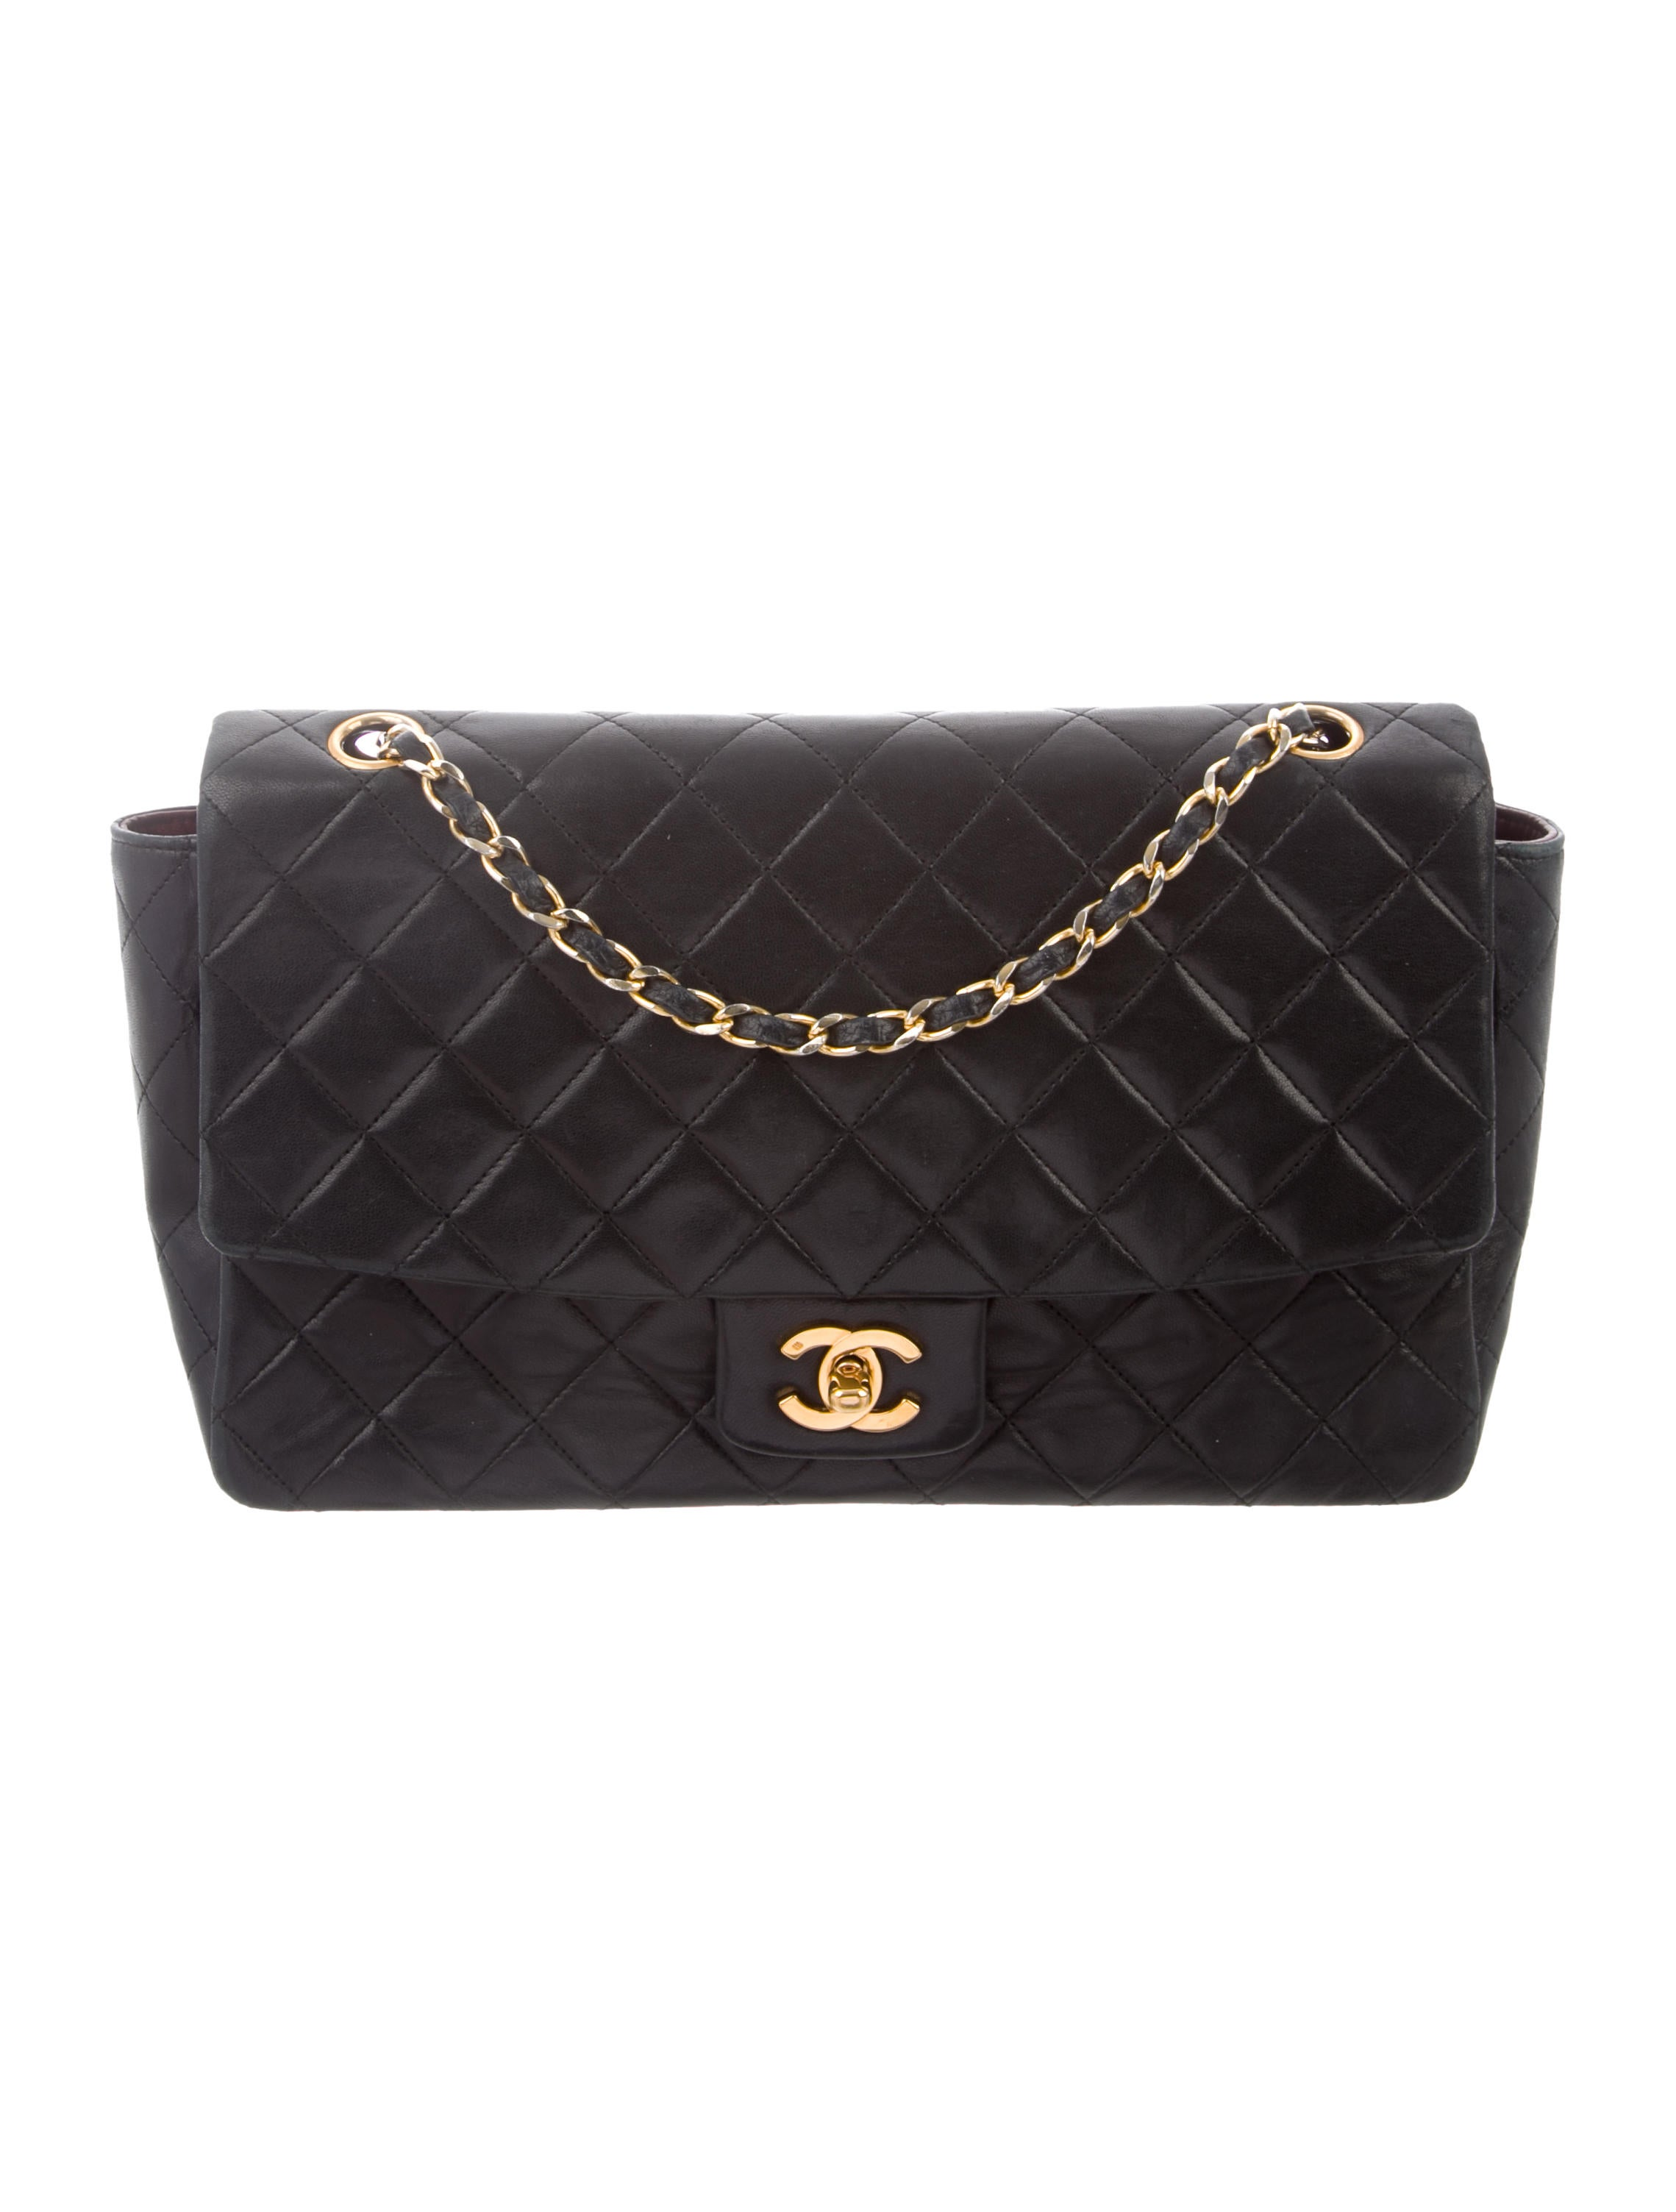 a96d949fbf44 Chanel Vintage Quilted Flap Bag - Handbags - CHA337169 | The RealReal